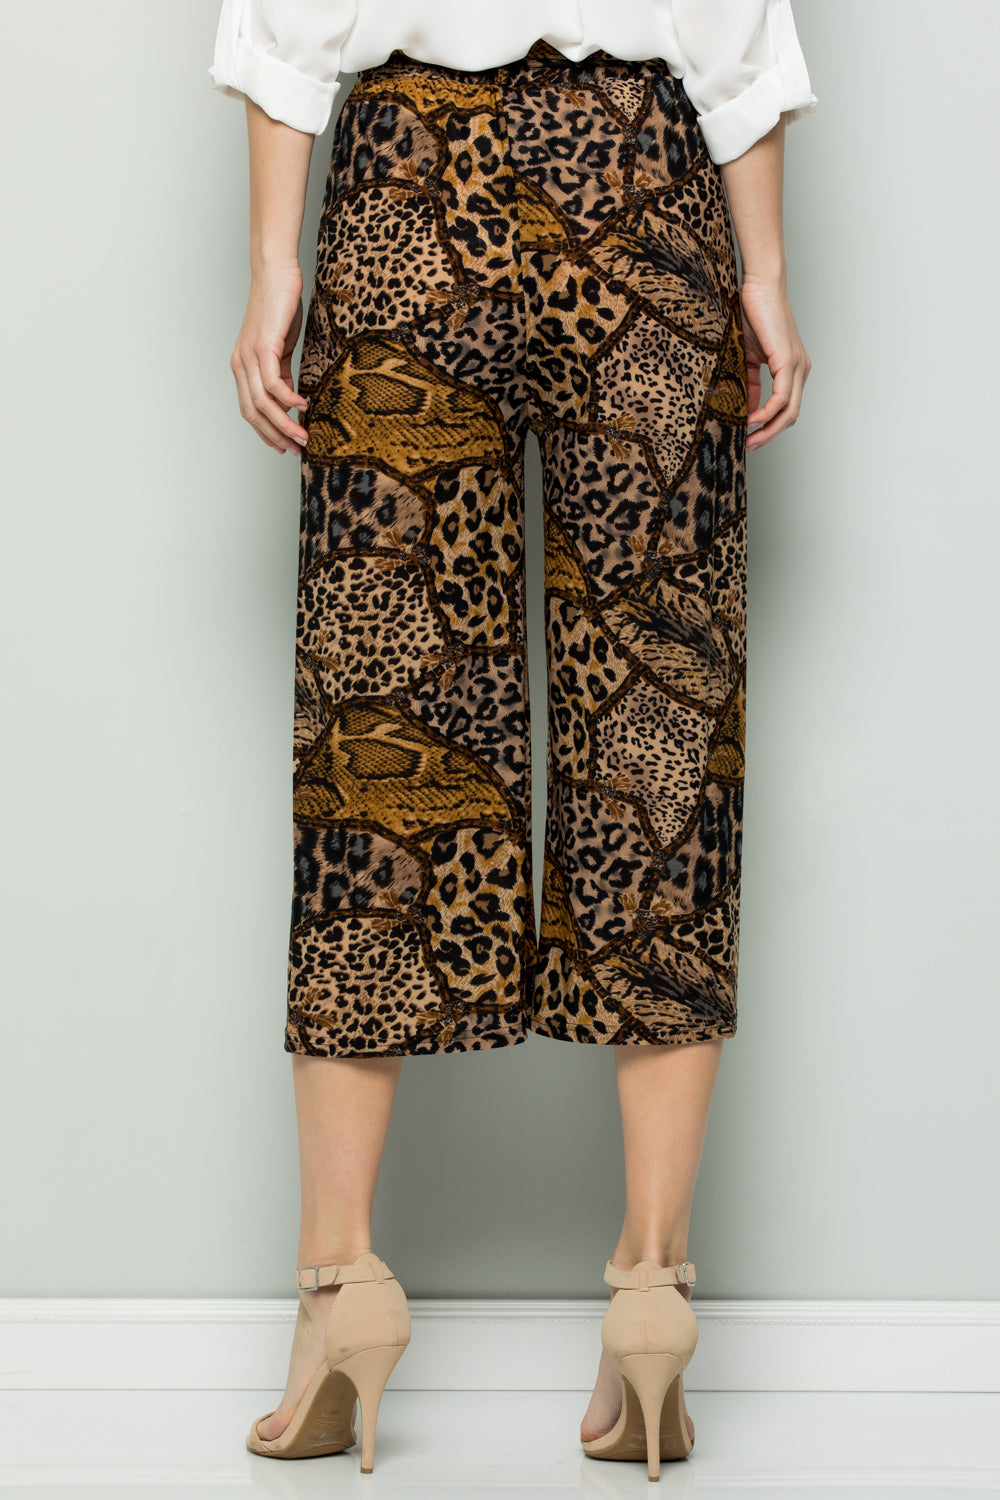 TAN GREY WILD PRINT HIGH WAIST CULOTTES